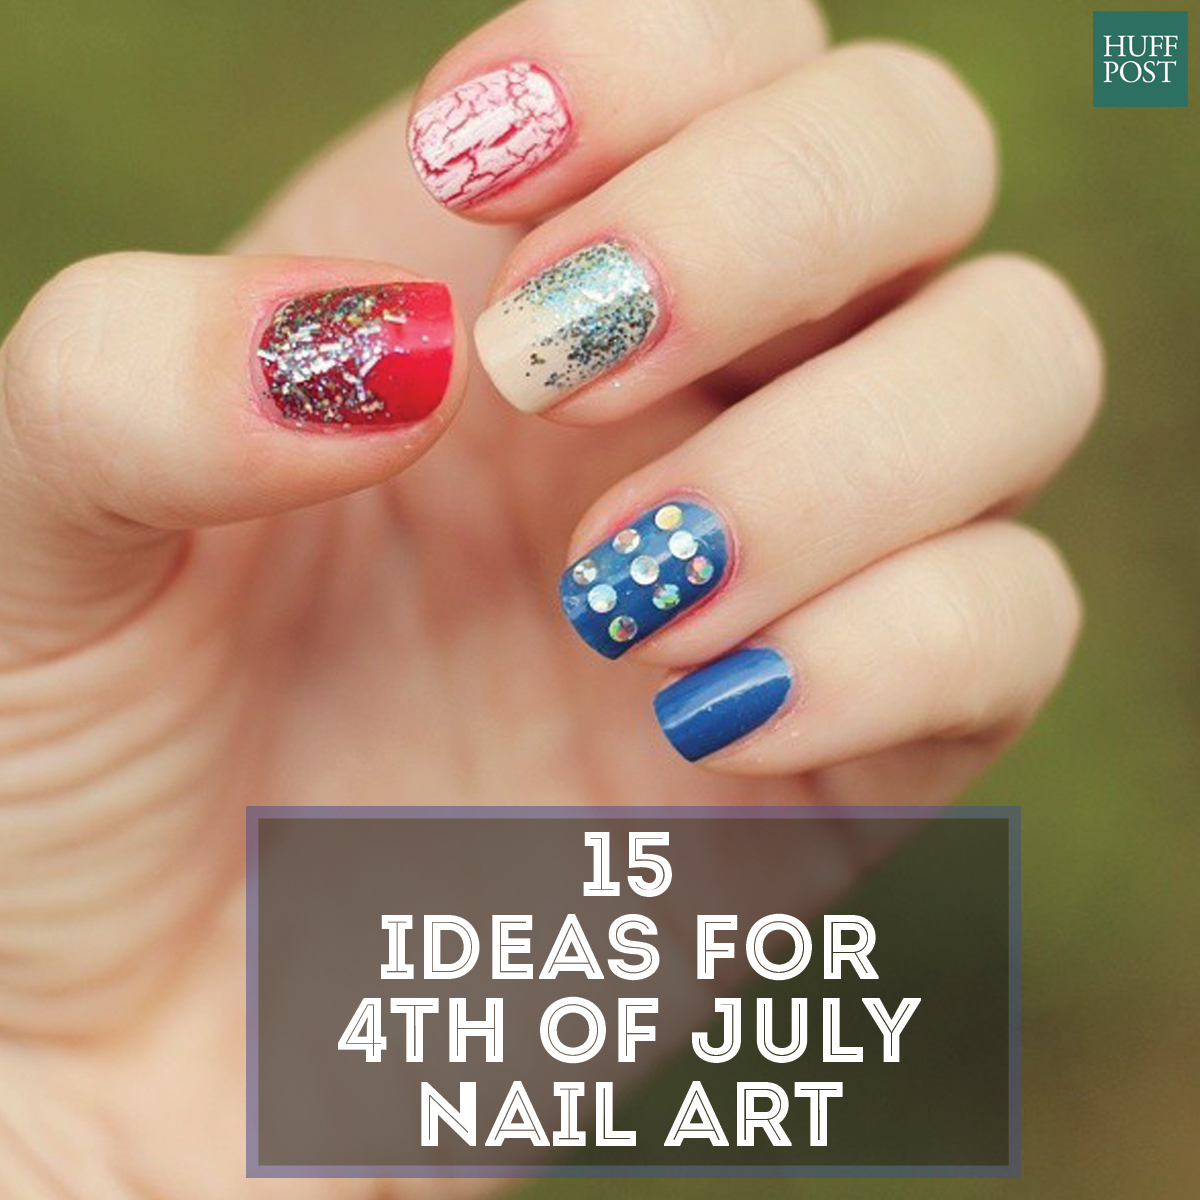 American Flag Nail Art For Your Fourth Of July Celebration | HuffPost